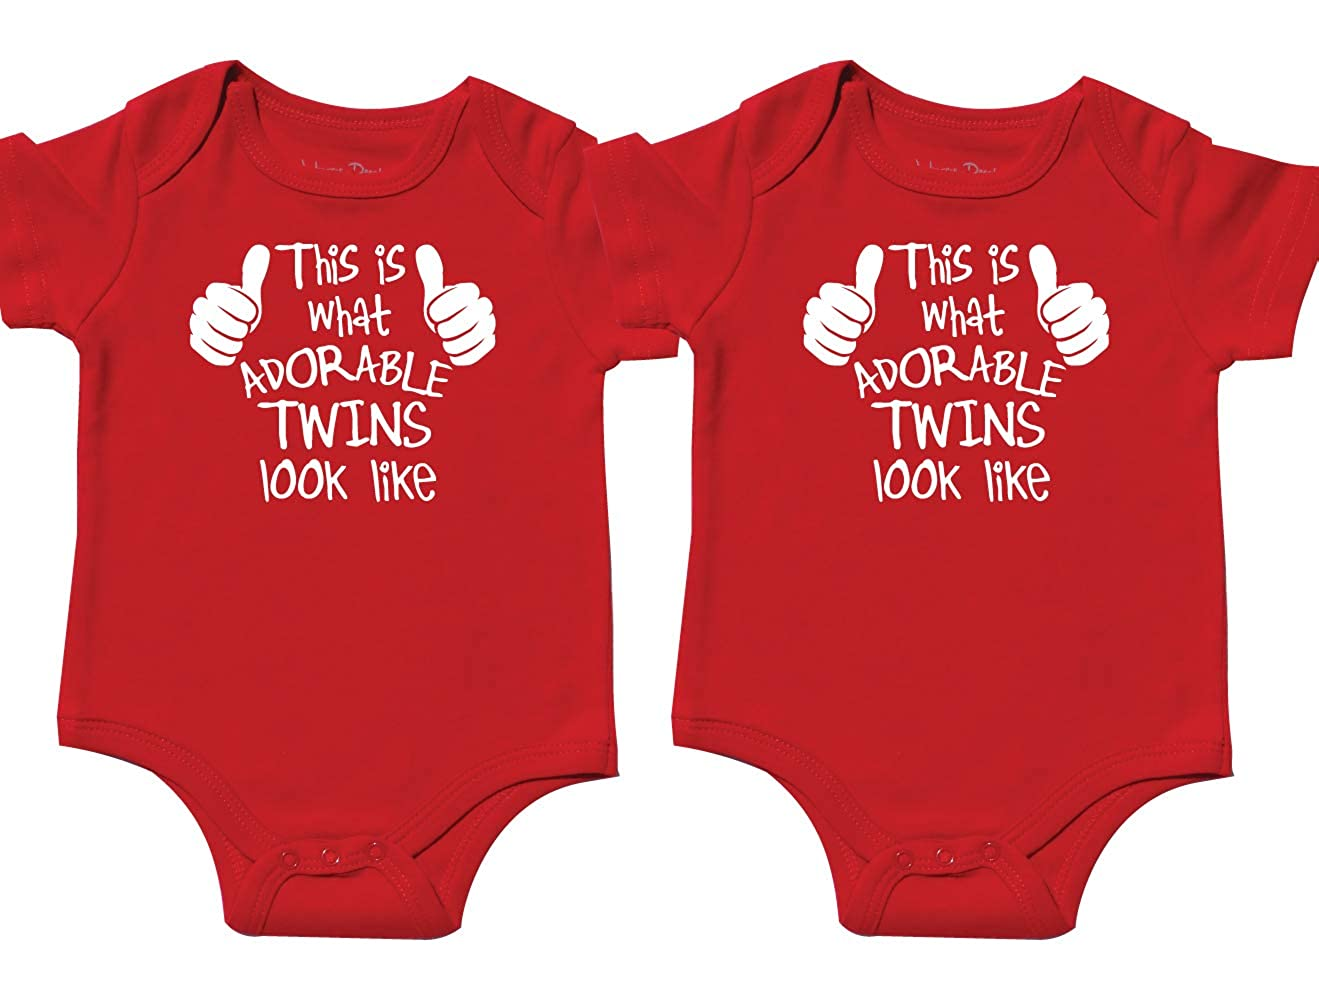 ae2bb6162 Please see Description for dimensions on t-shirts. Screen printed design on  Cotton bodysuits for comfort and softness. Gift Set Includes 2 bodysuits.